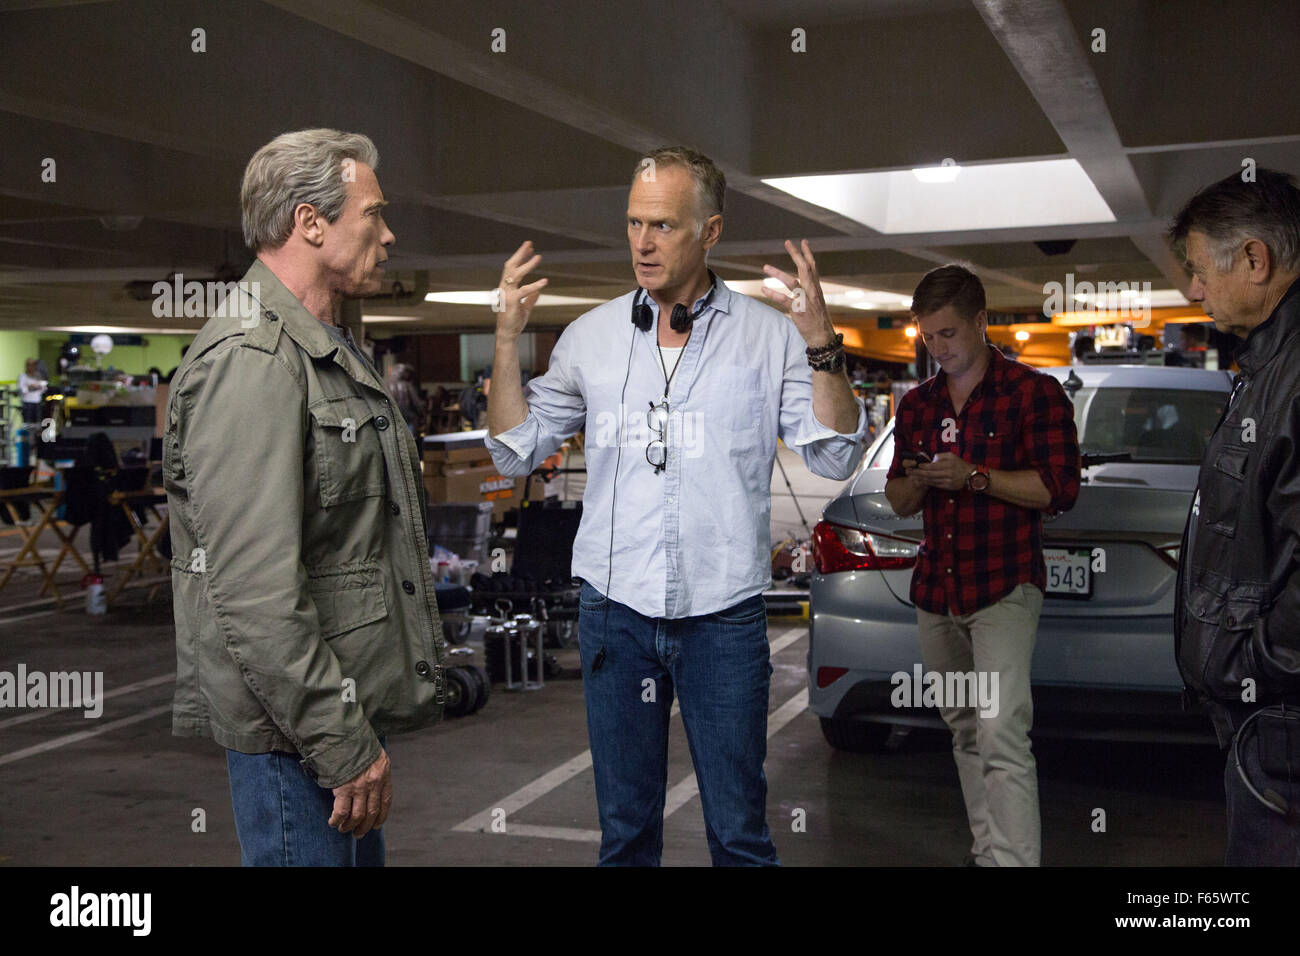 Terminator Genisys Year : 2015 USA Director : Alan Taylor Arnold Schwarzenegger, Alan Taylor Shooting picture - Stock Image